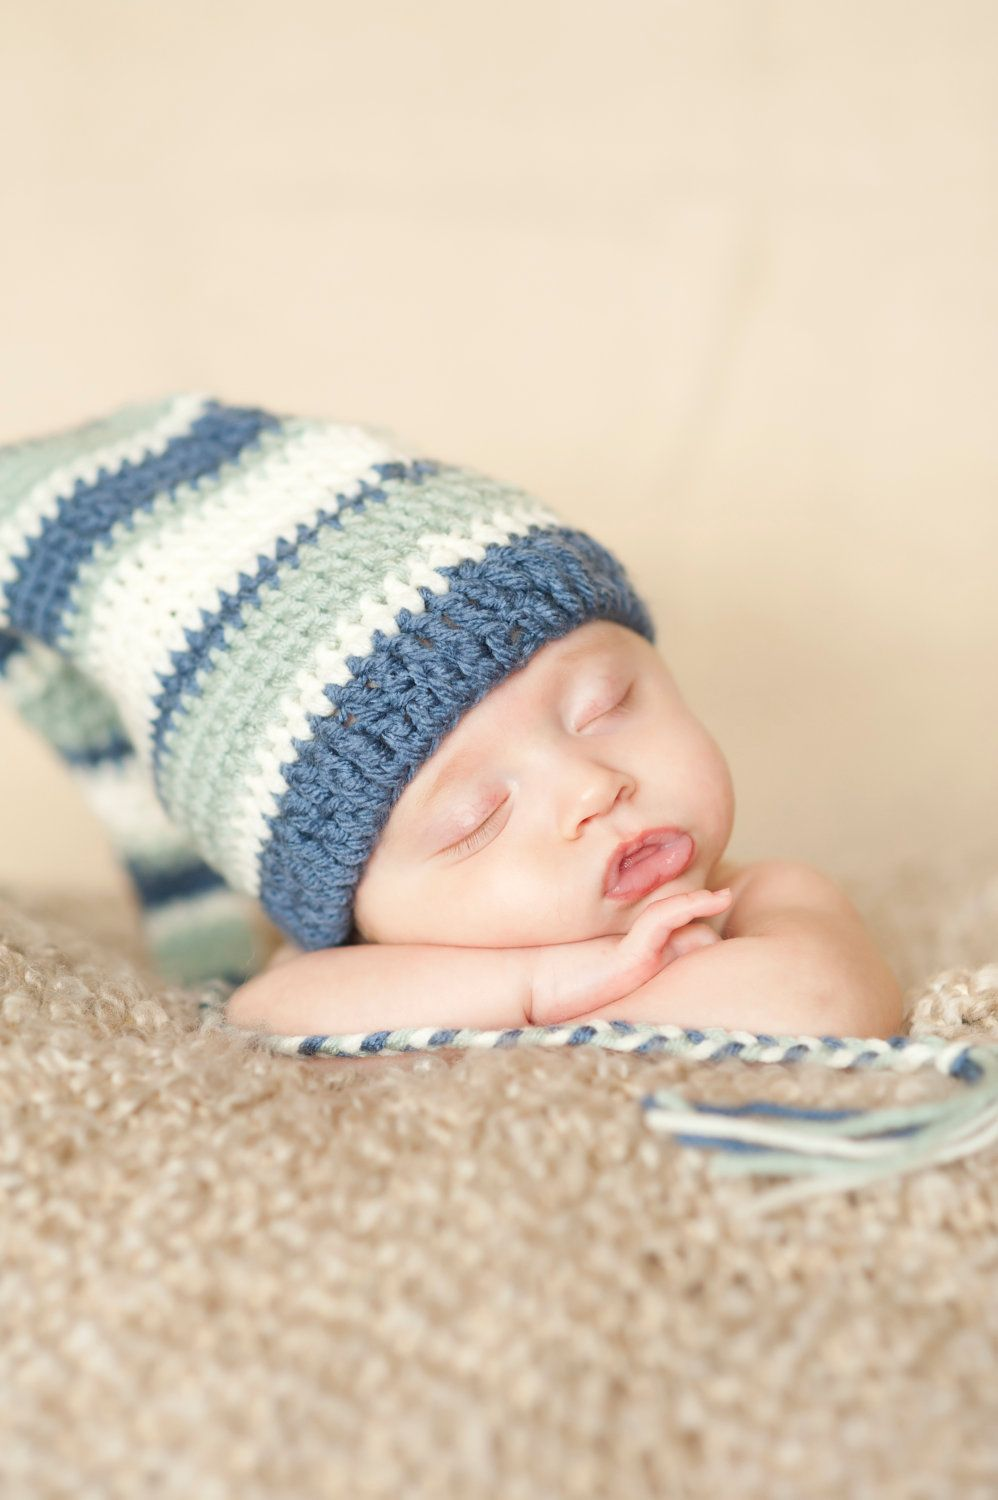 Crochet Baby Stocking Cap Pattern : Crochet Pattern, Stockign Cap, Pattern for photo prop or ...